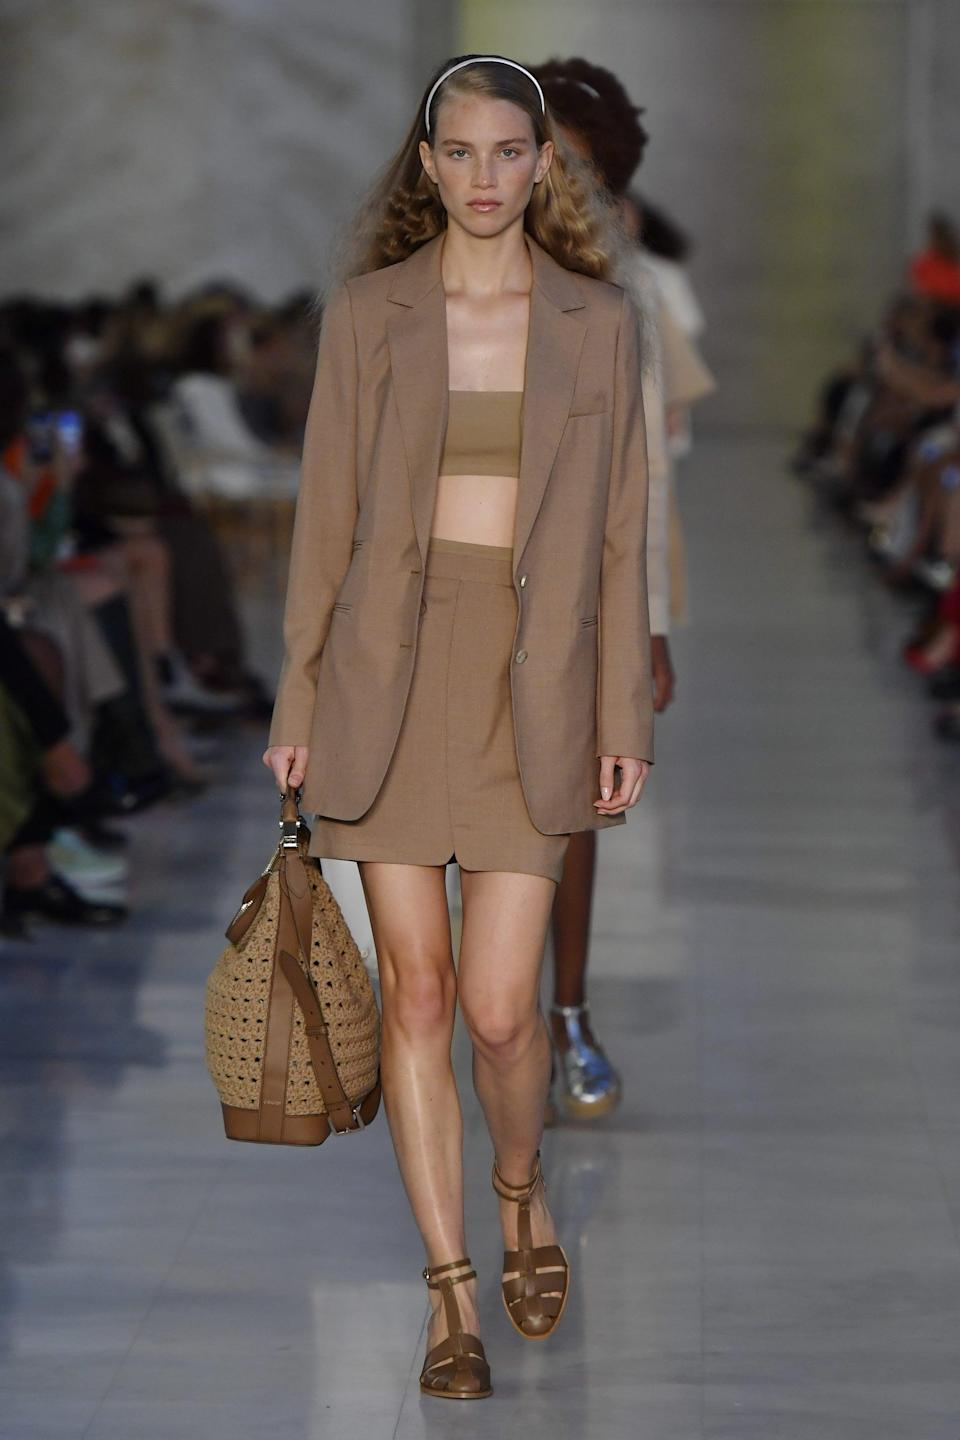 <p>A bag from Max Mara spring 2022 collection.</p>